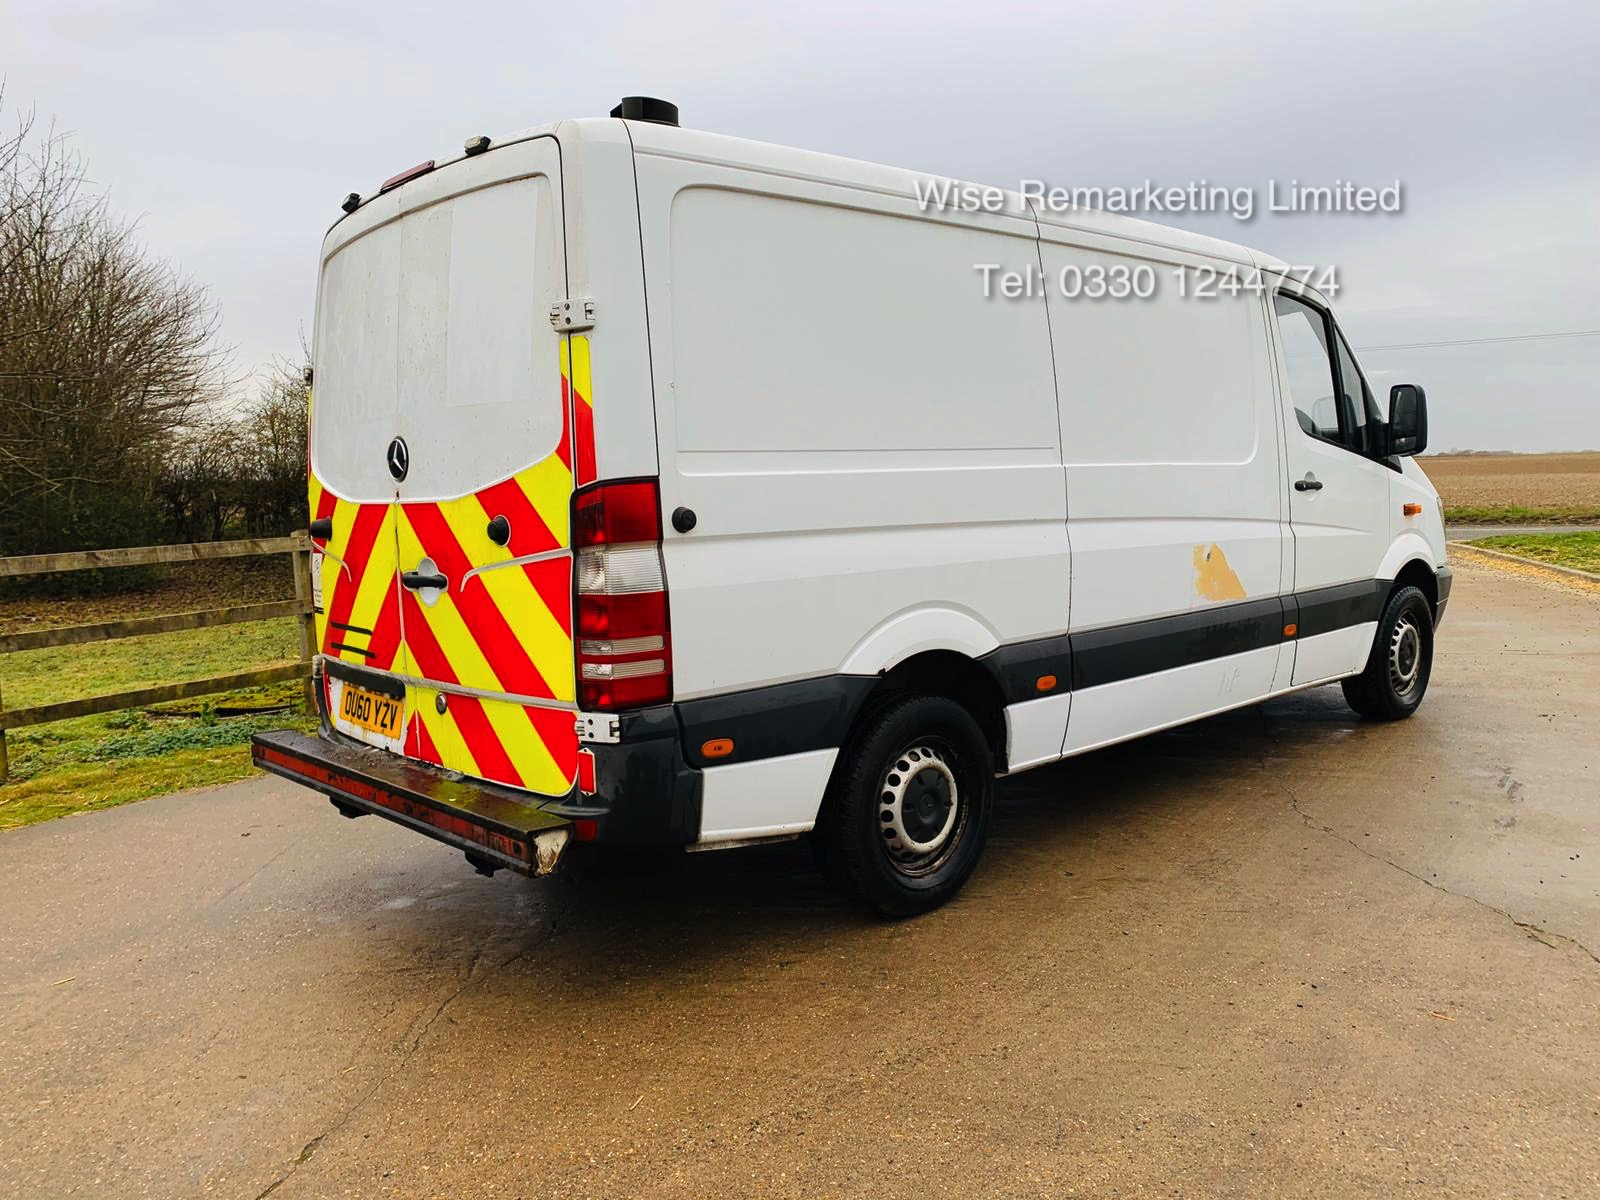 Reserve Met Mercedes Sprinter 313 CDI 2.1 TD *Automatic Triptronic Gearbox* - 2011 Model - Ply Lined - Image 7 of 15